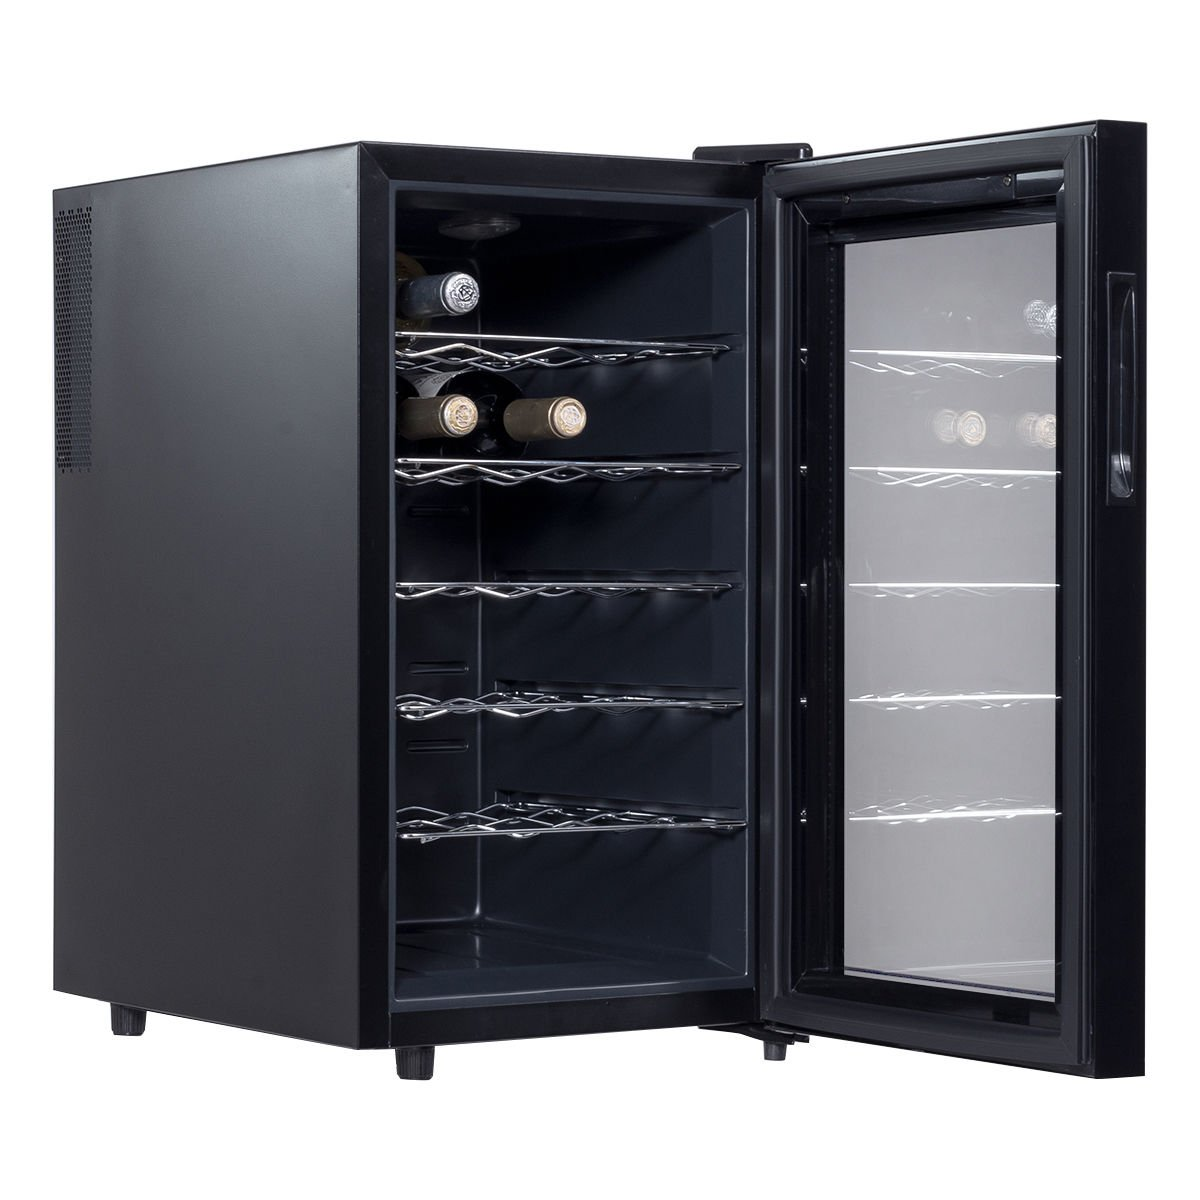 Costway Thermoelectric Wine Cooler Freestanding Cellar Chiller Refrigerator Quiet Compact w/ Touch Control (18 Bottle) by COSTWAY (Image #3)